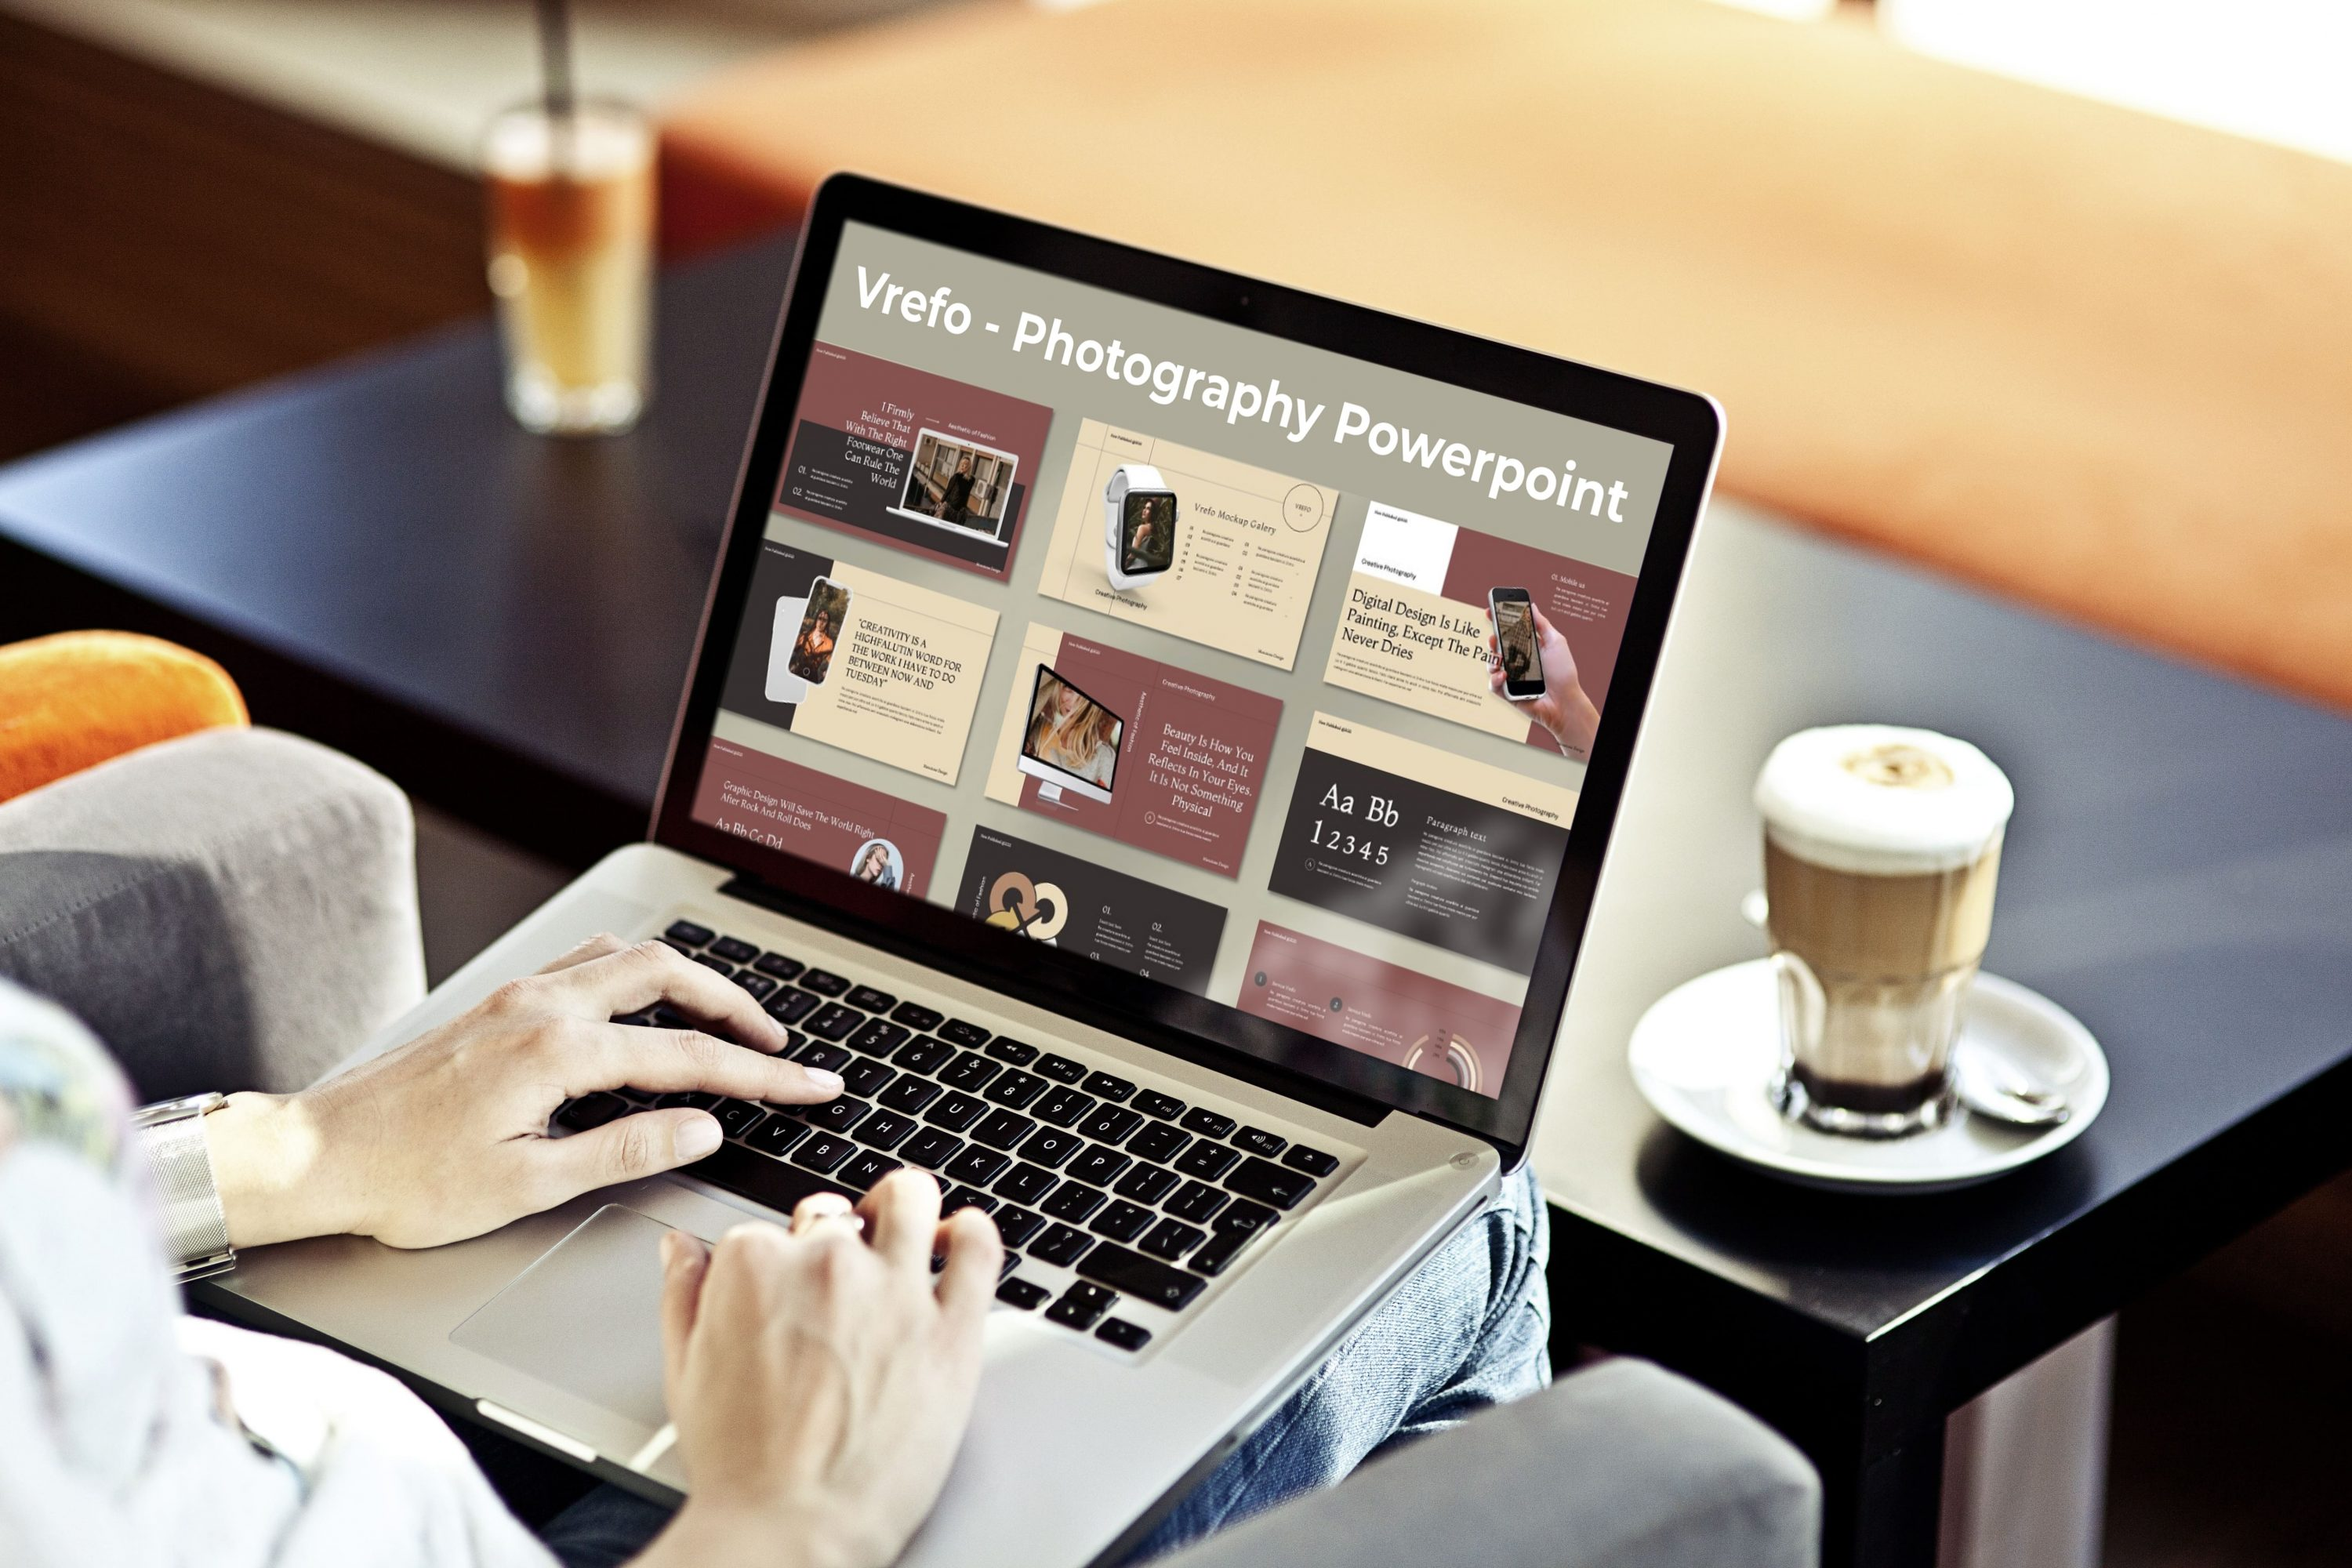 Laptop option of the Vrefo - Photography Powerpoint.